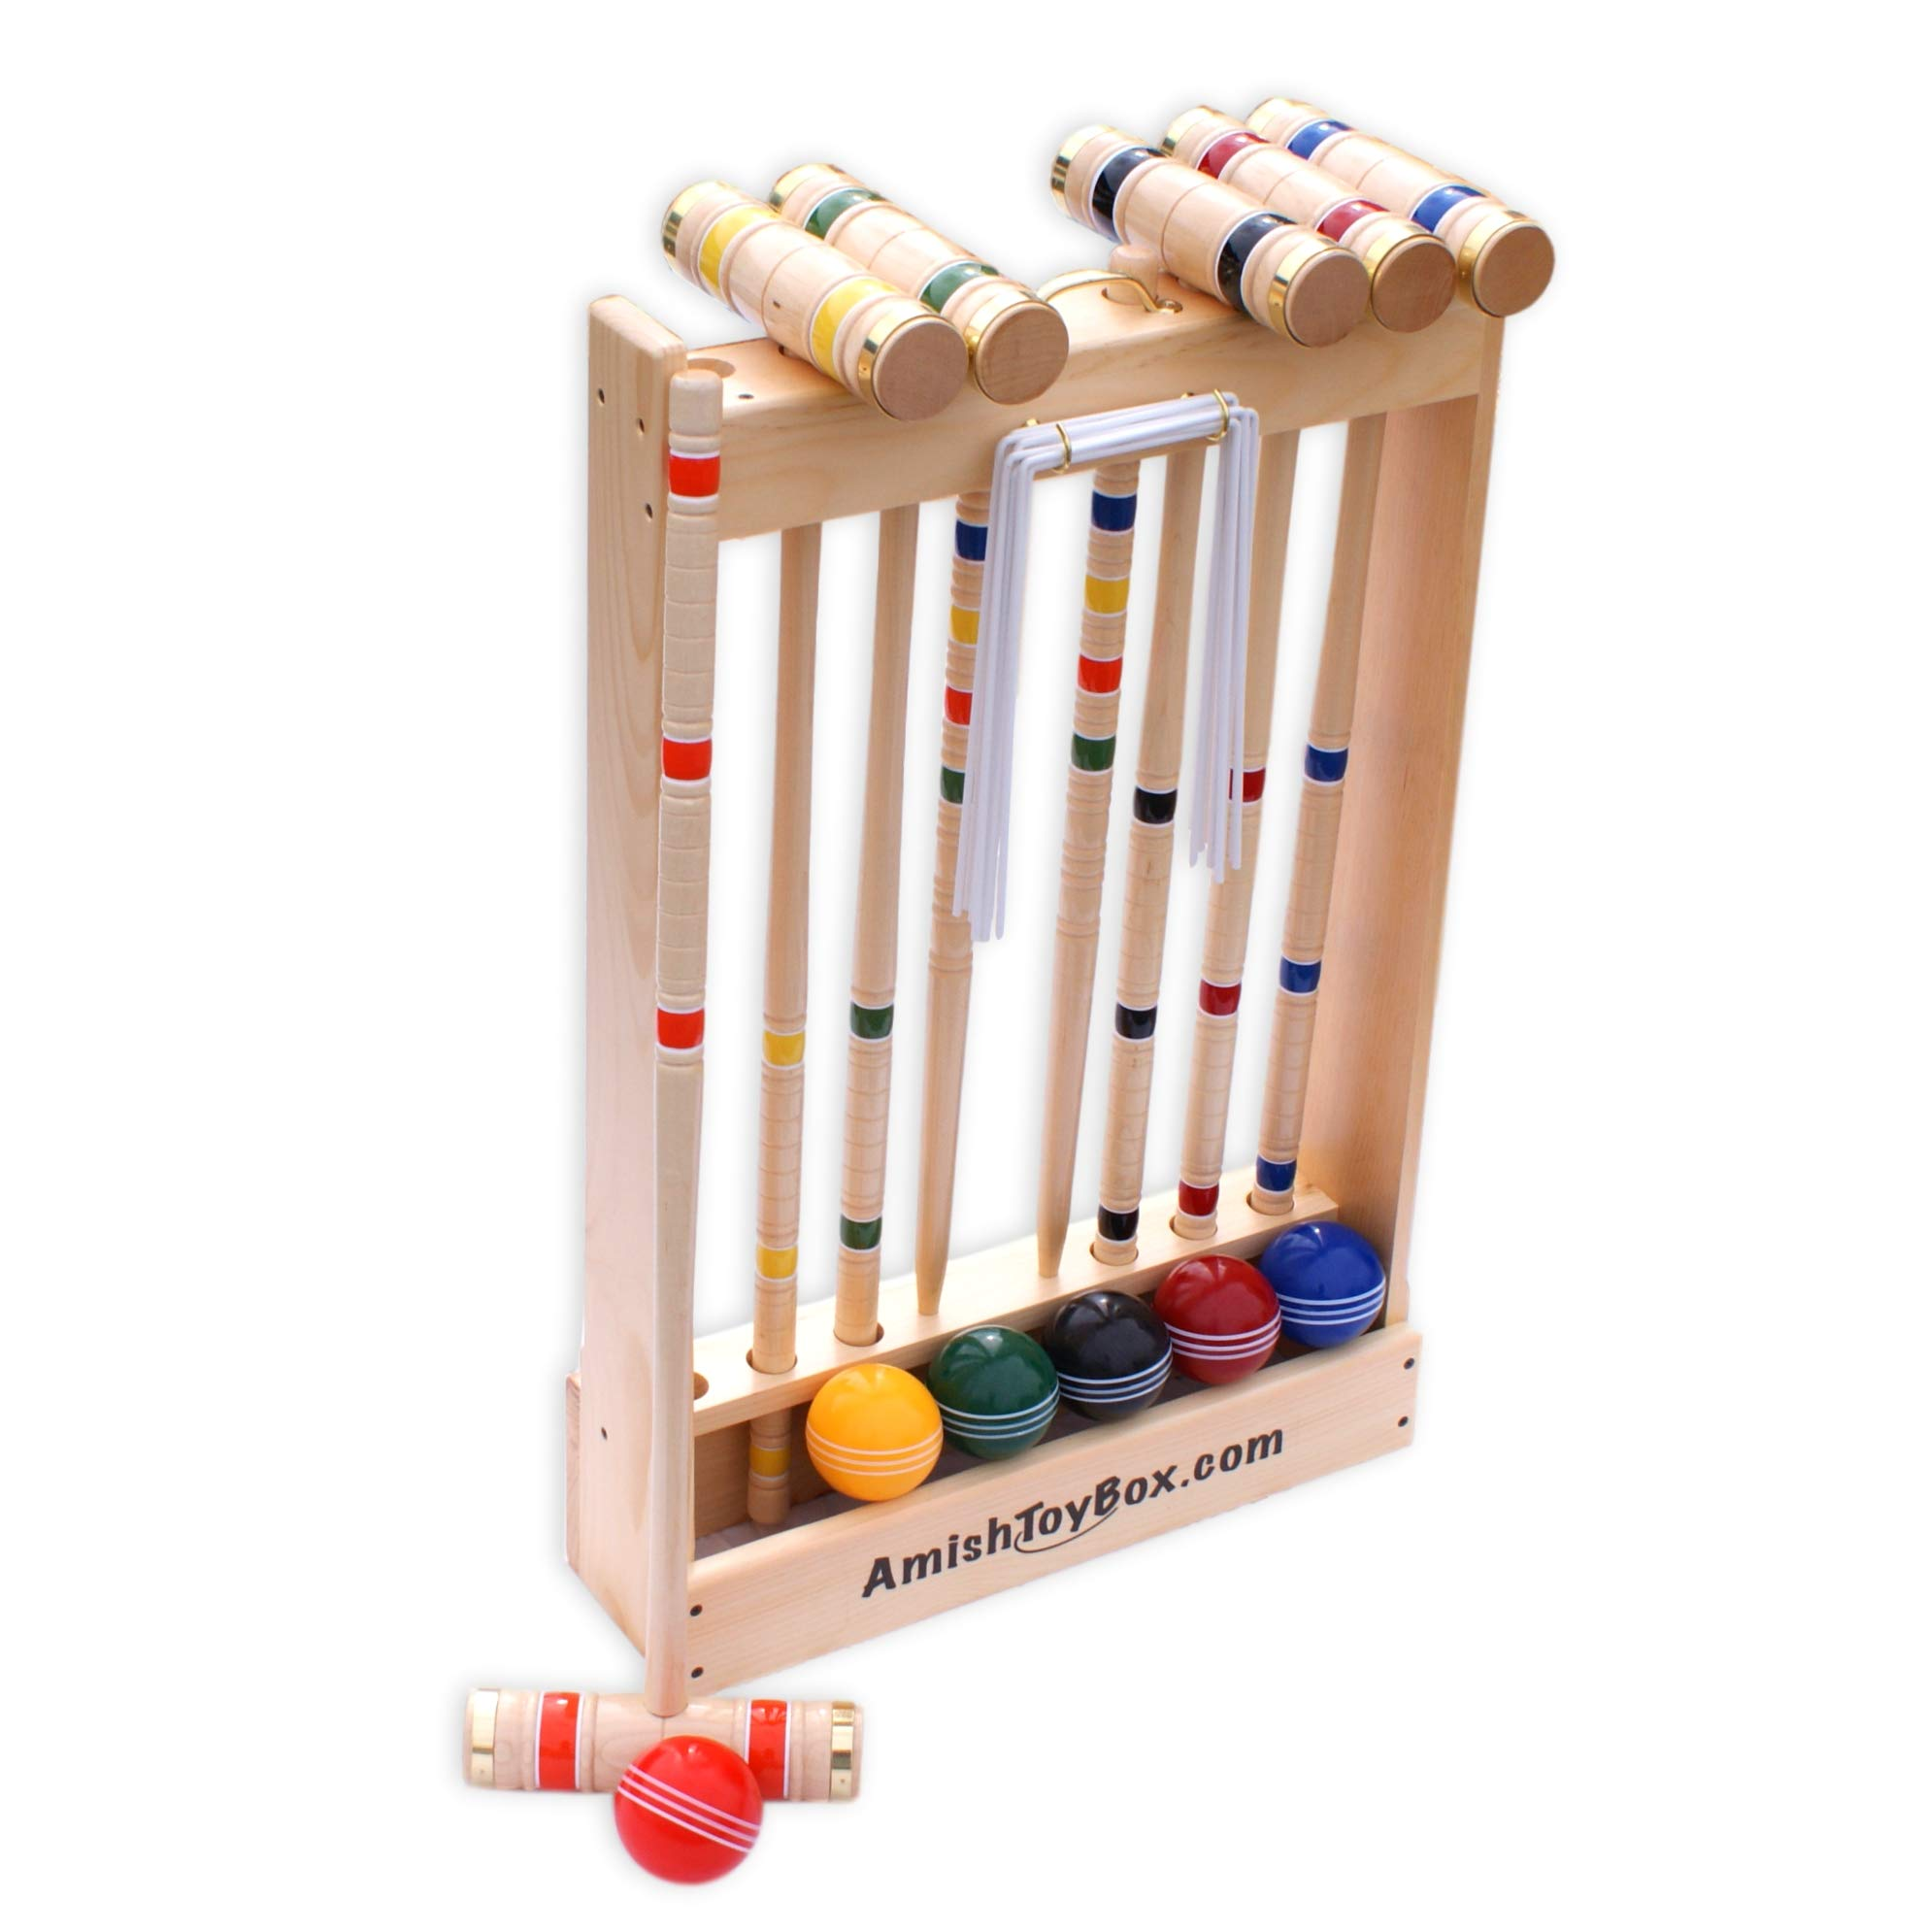 Amish-Crafted Deluxe Maple-Wood Croquet Game Set, 6 Player (Three 28'' Handles/Three 32'' Handles) by AmishToyBox.com (Image #2)